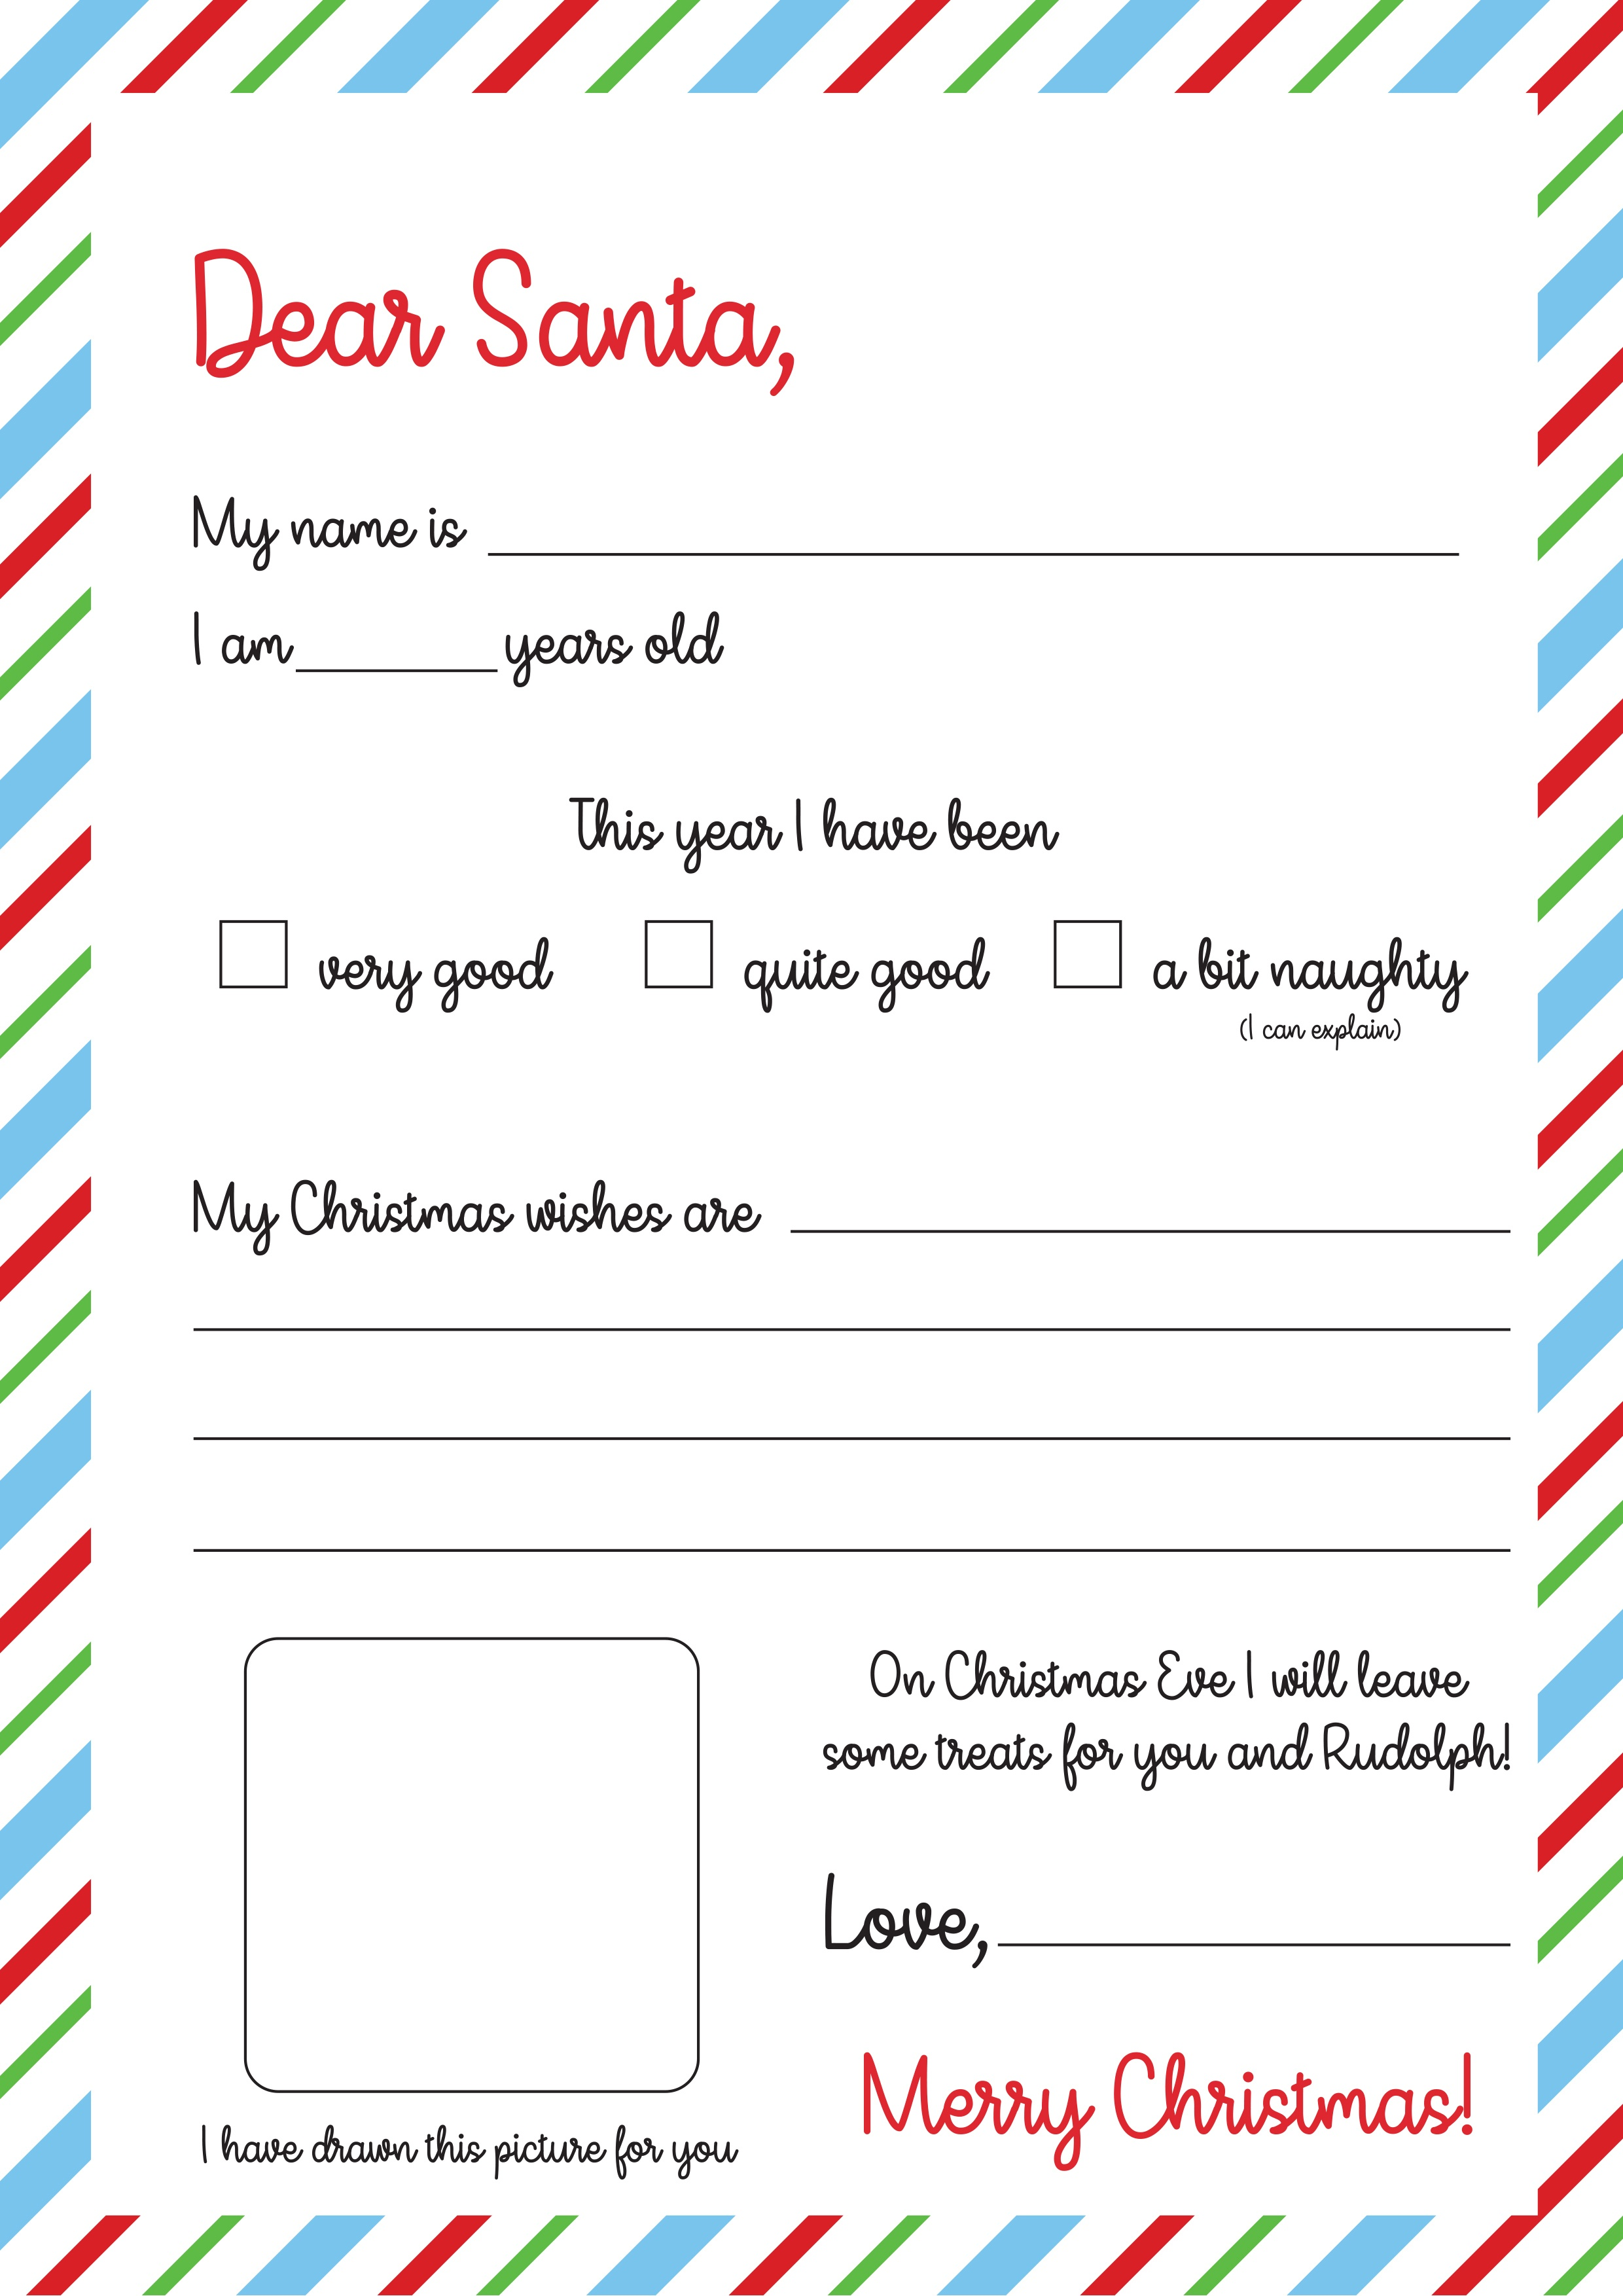 Free Letter To Santa Template Print   The Craft Blog - Letter To Santa Template Free Printable